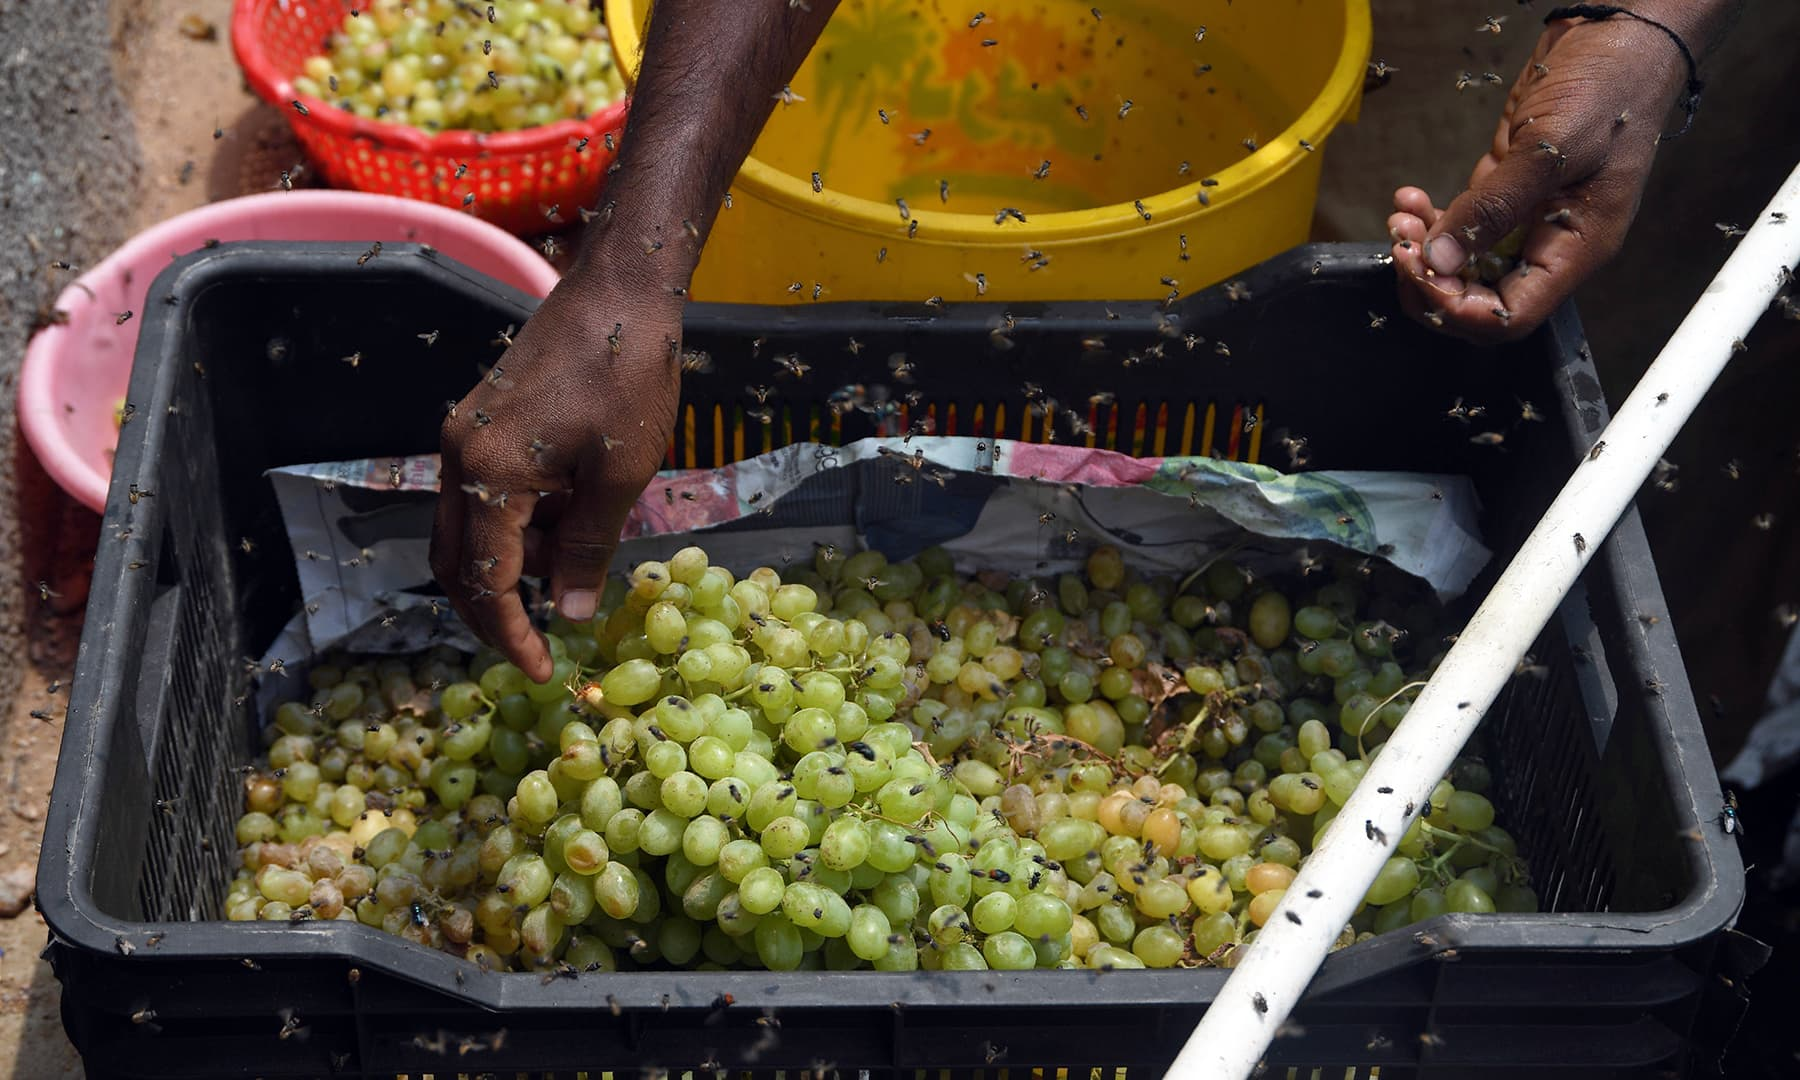 In this picture taken on September 2, a vendor arranges grapes as flies swarm around his cart in a slum area in Karachi. — AFP